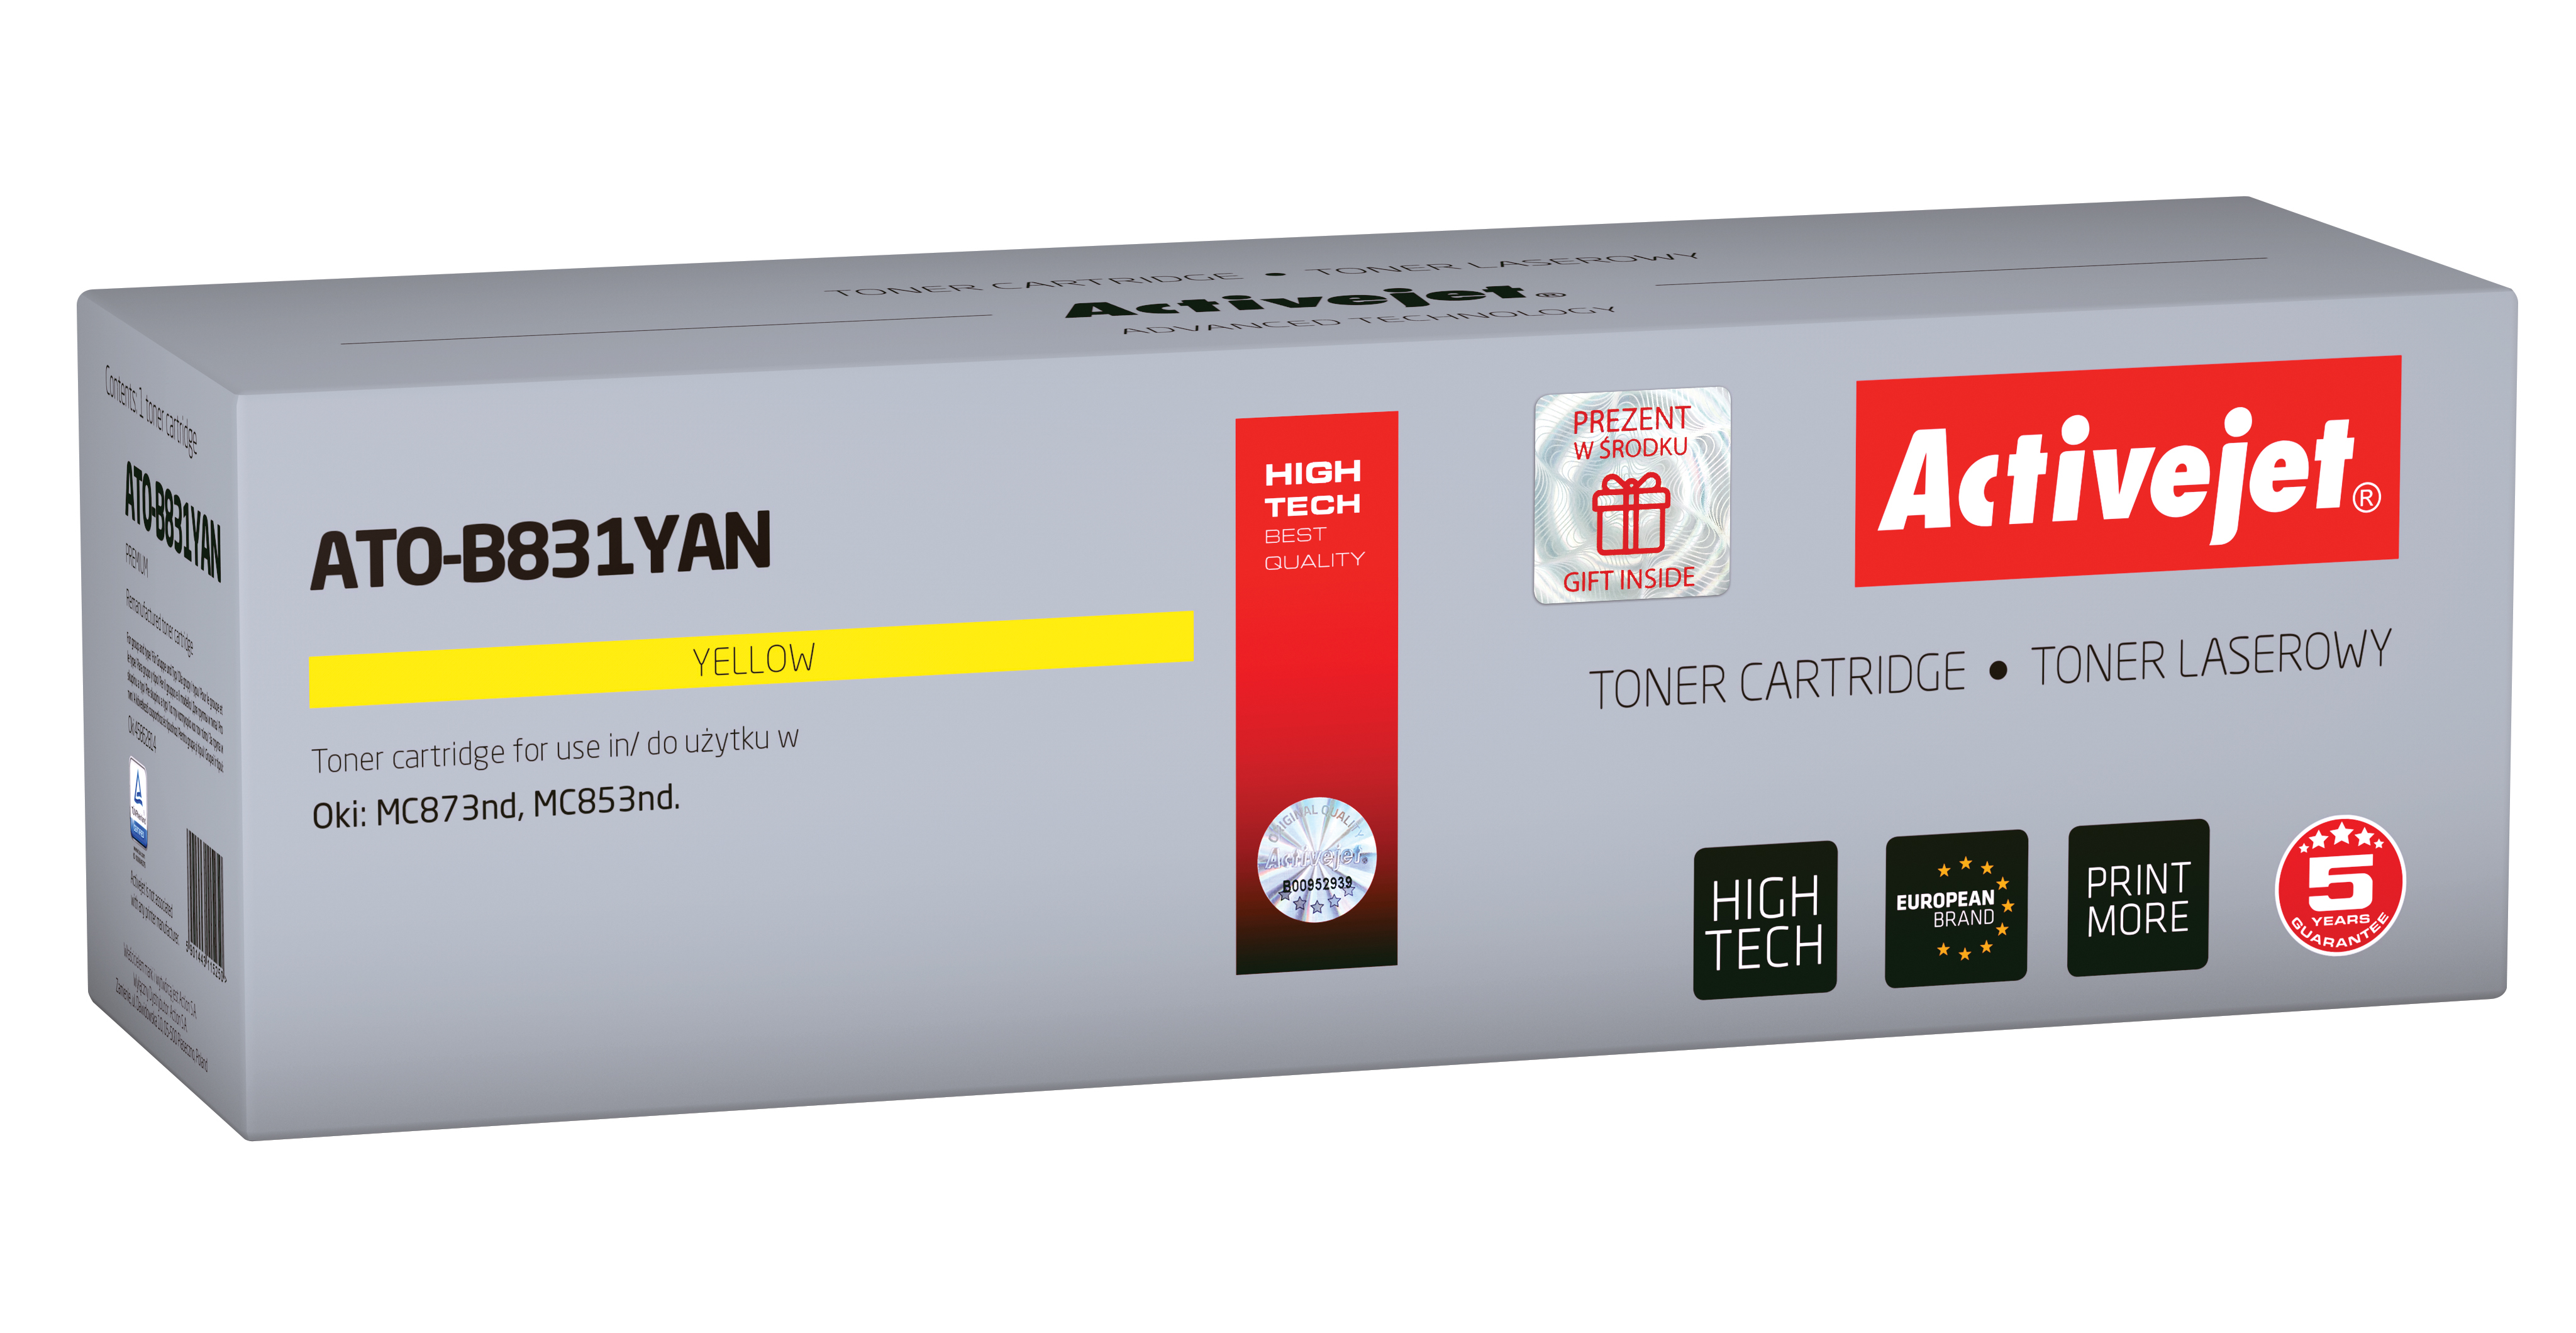 Activejet toner do OKI 44844509 reg ATO-B831YAN